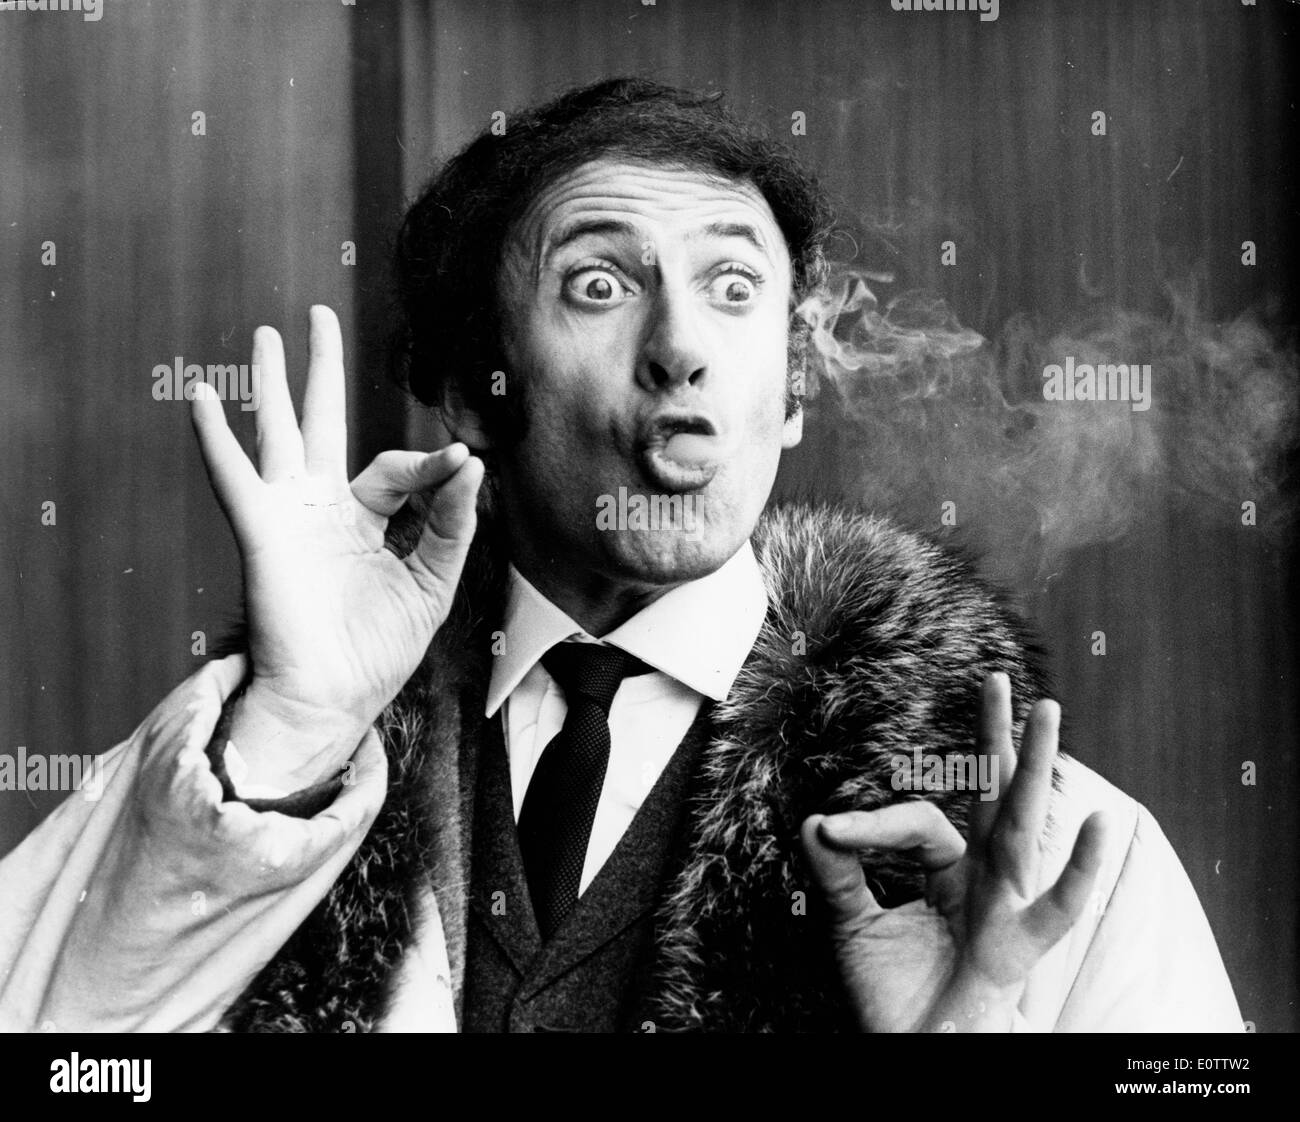 French mime Marcel Marceau blowing smoke out of his mouth - Stock Image